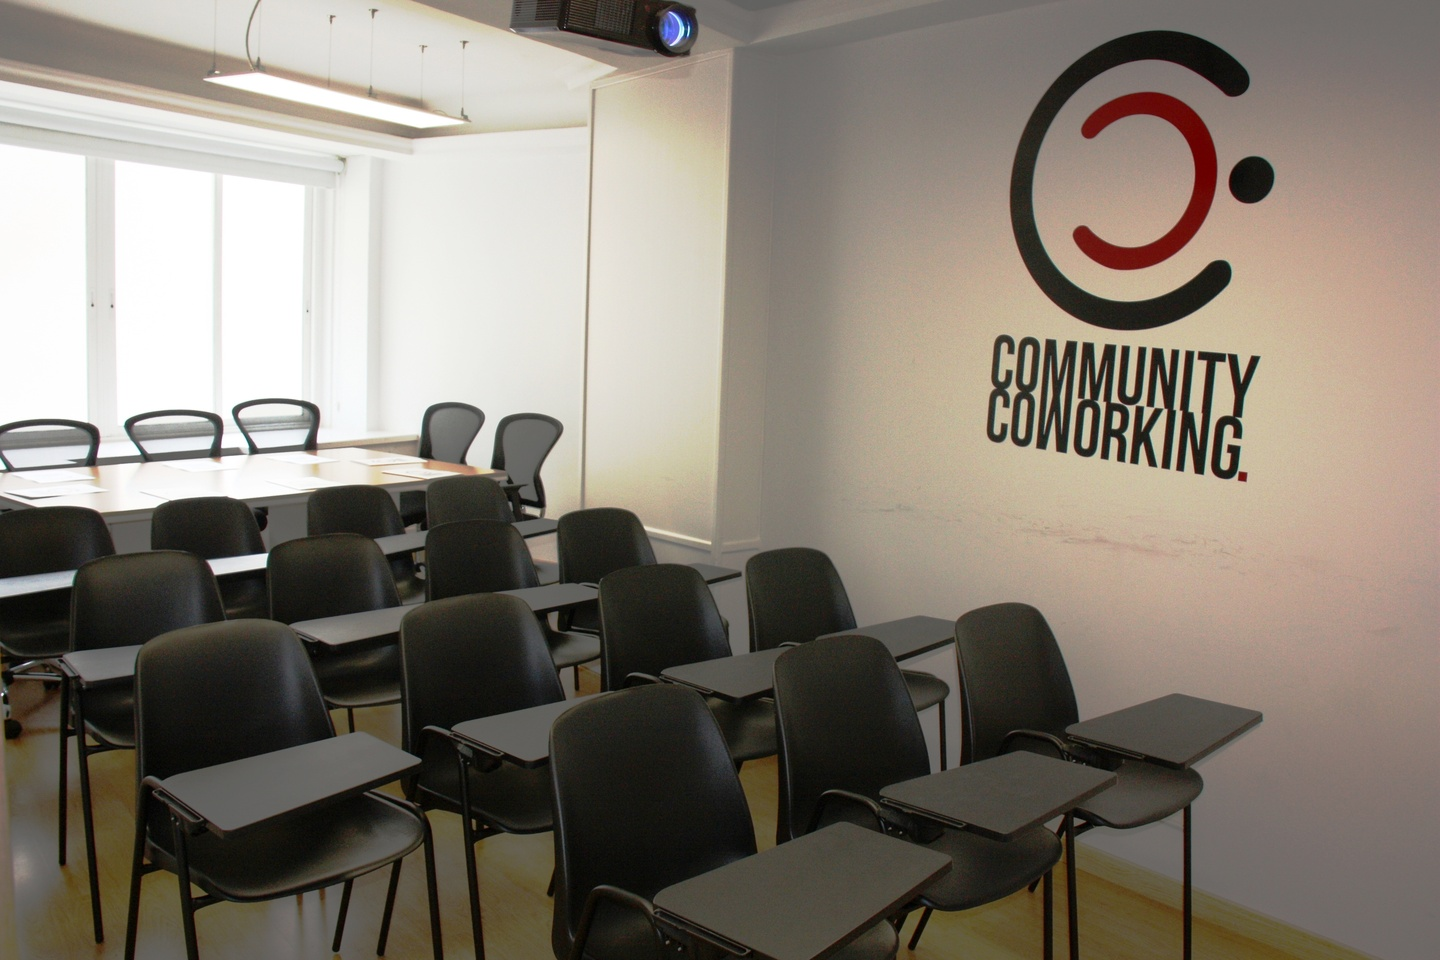 Madrid Train station meeting rooms Coworking space Community Coworking Madrid  image 2